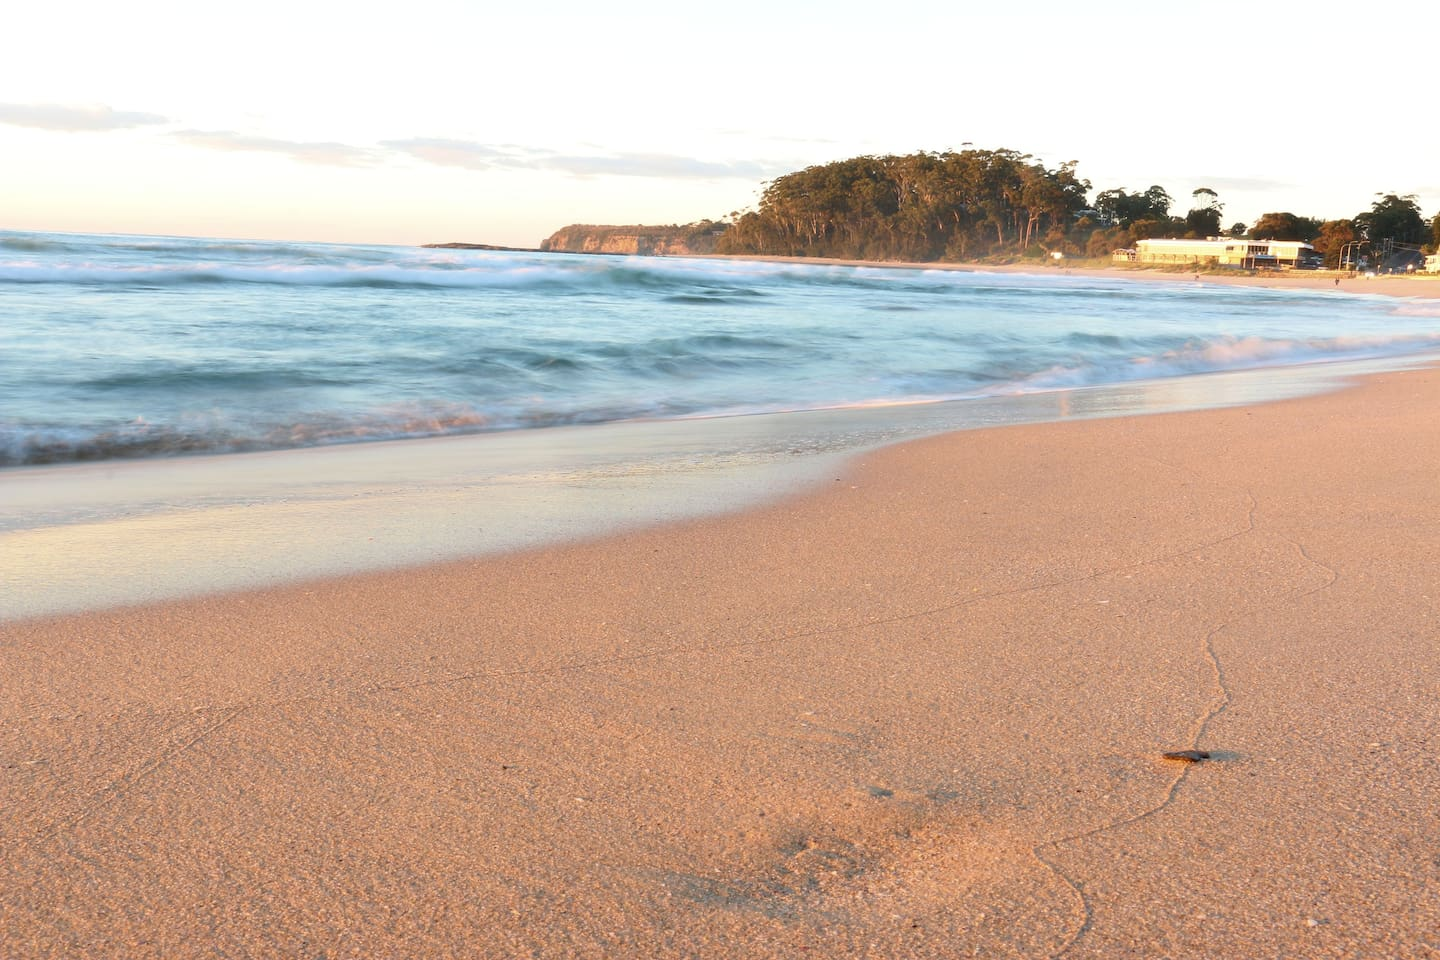 Early morning on Mollymook beach